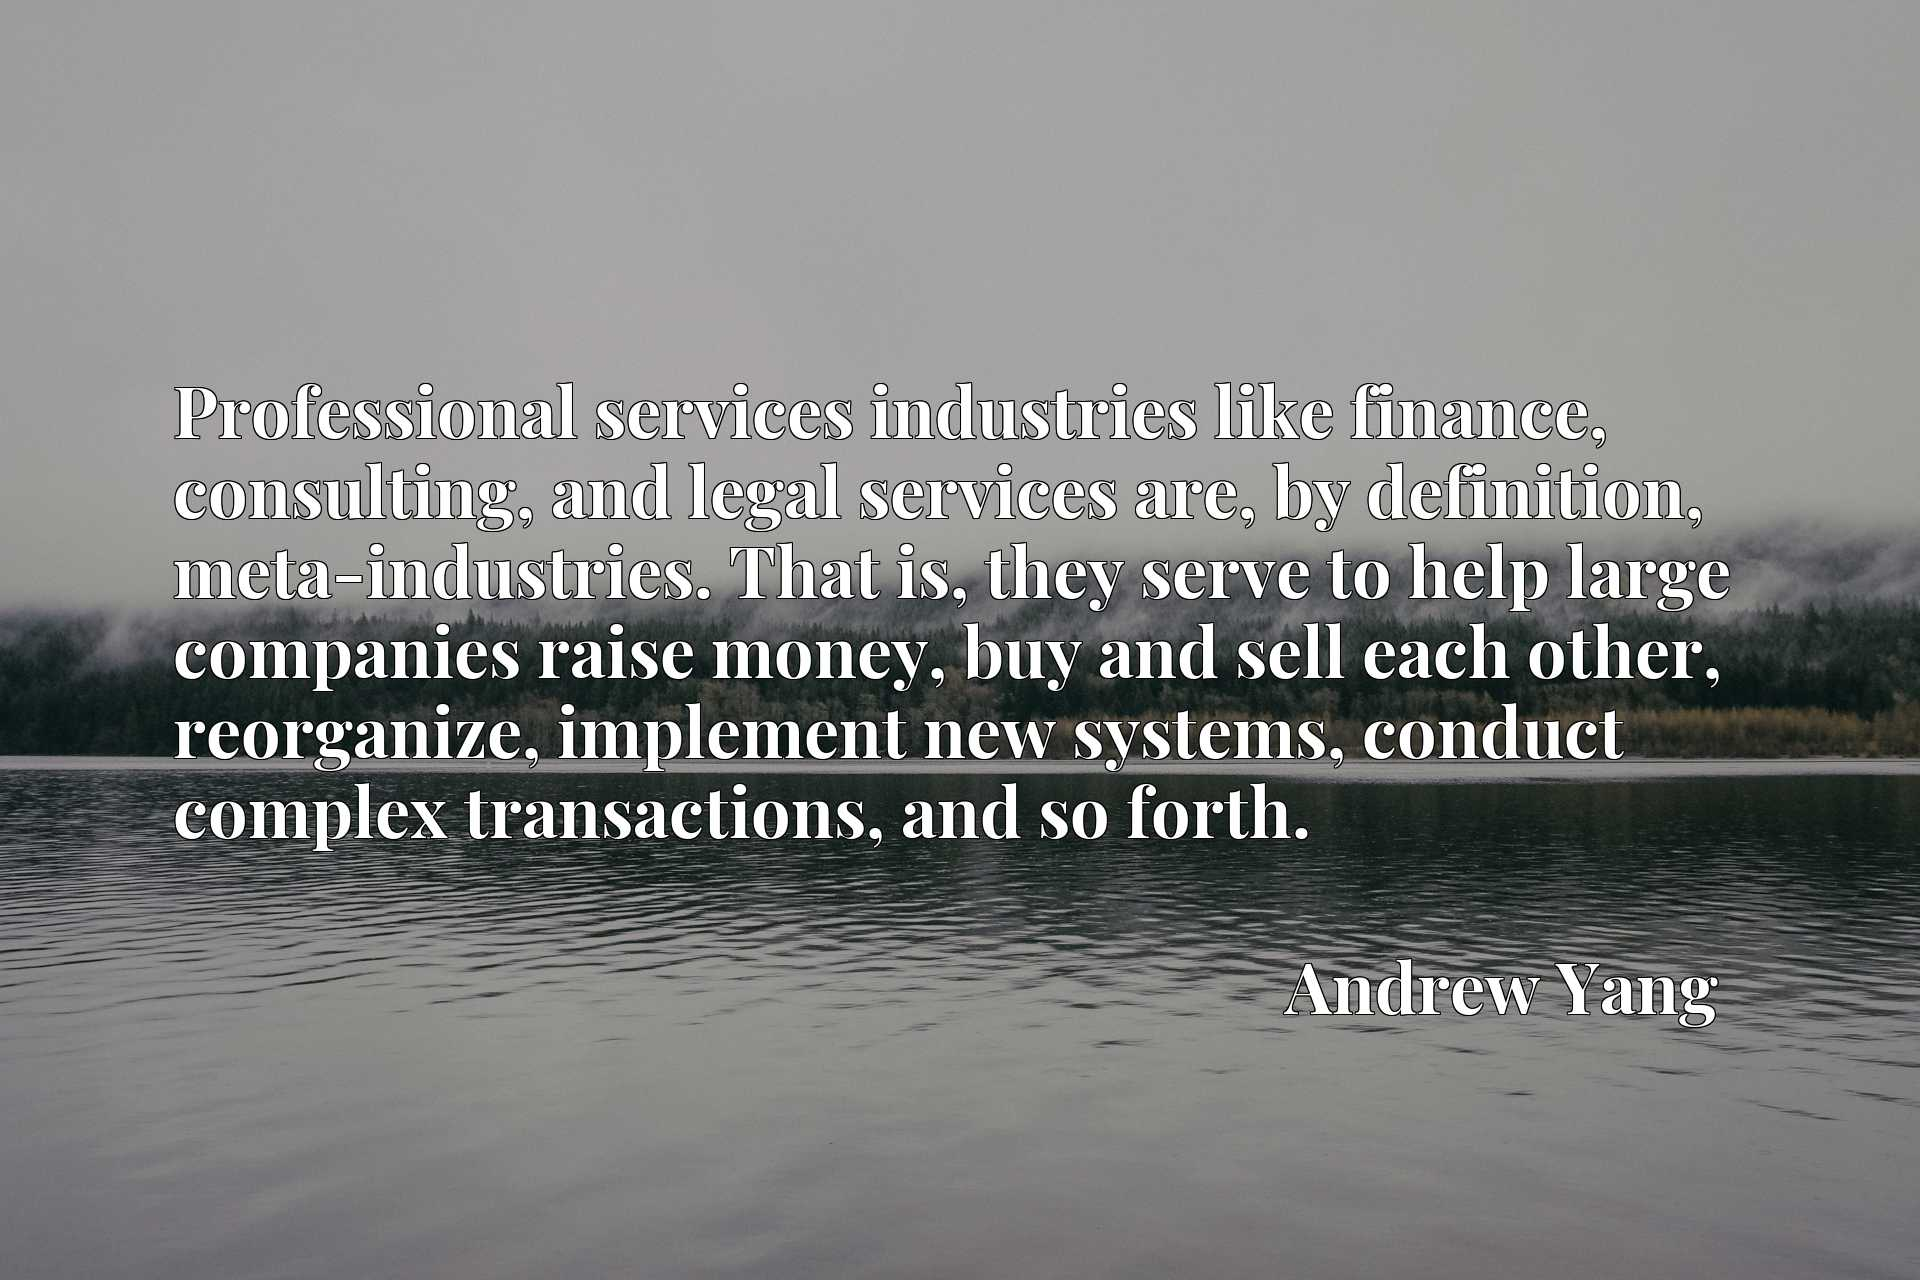 Professional services industries like finance, consulting, and legal services are, by definition, meta-industries. That is, they serve to help large companies raise money, buy and sell each other, reorganize, implement new systems, conduct complex transactions, and so forth.